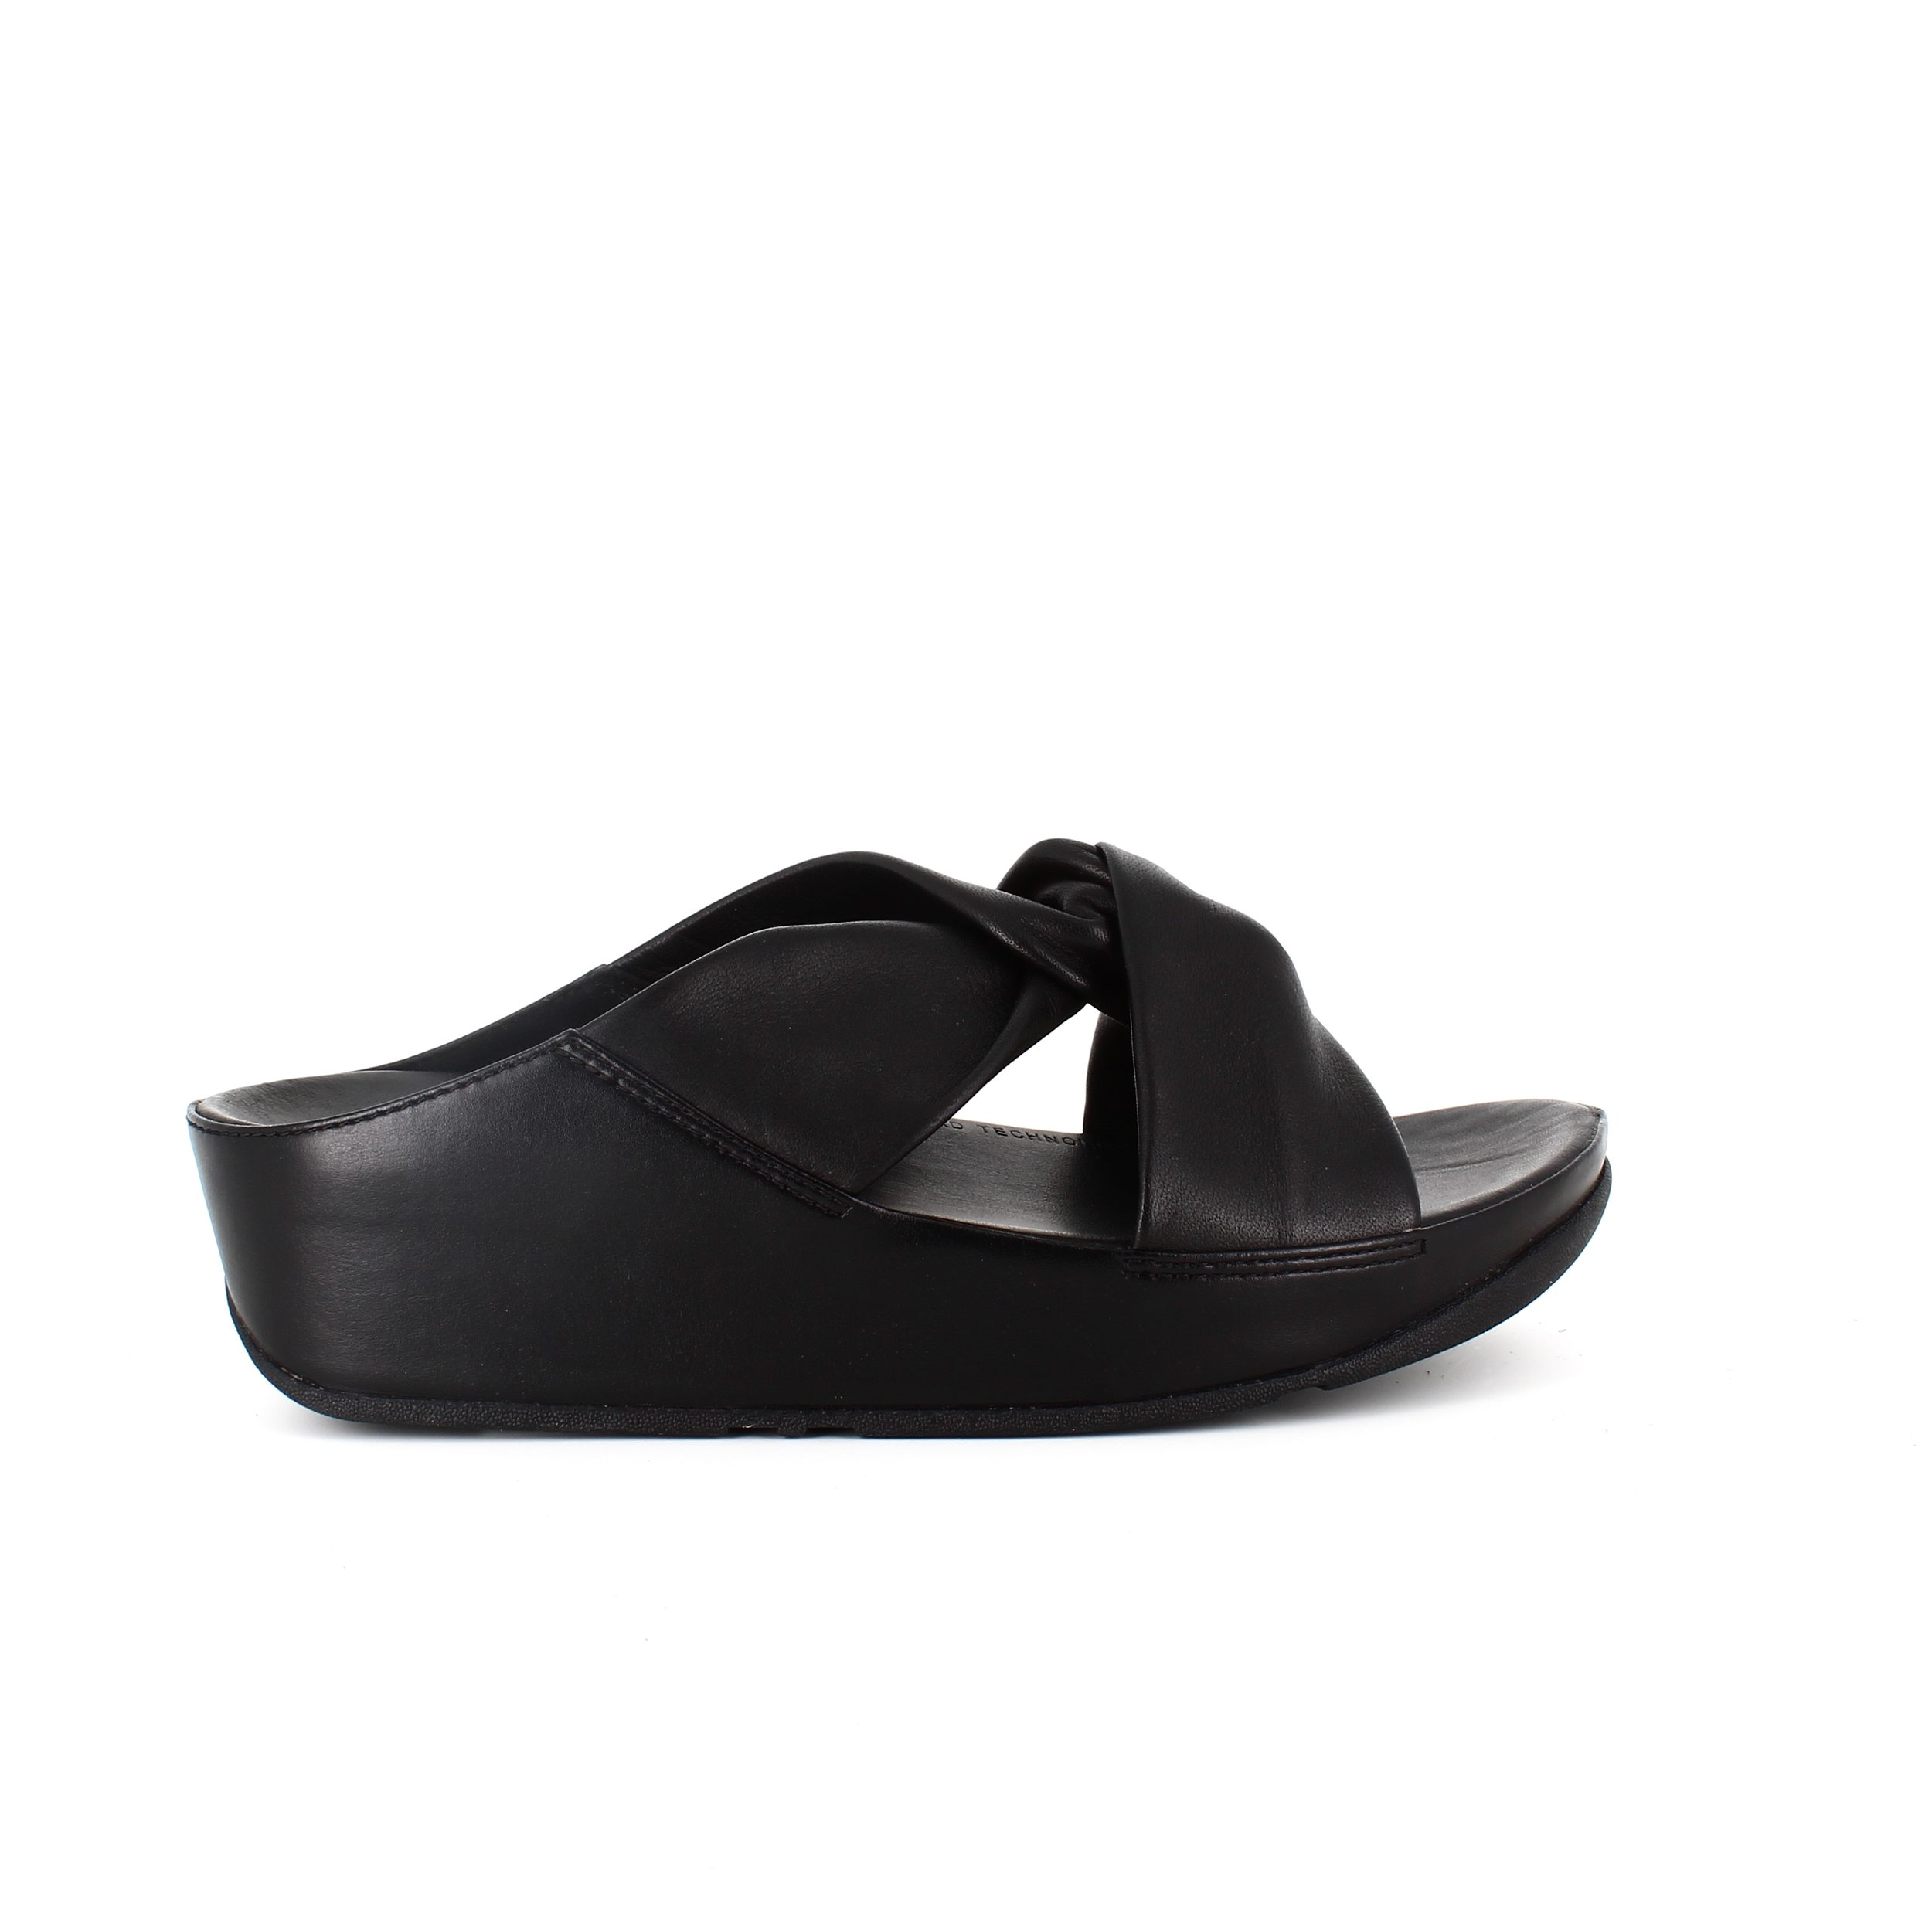 Image of   Fitflop læder sandal twiss slide - 40